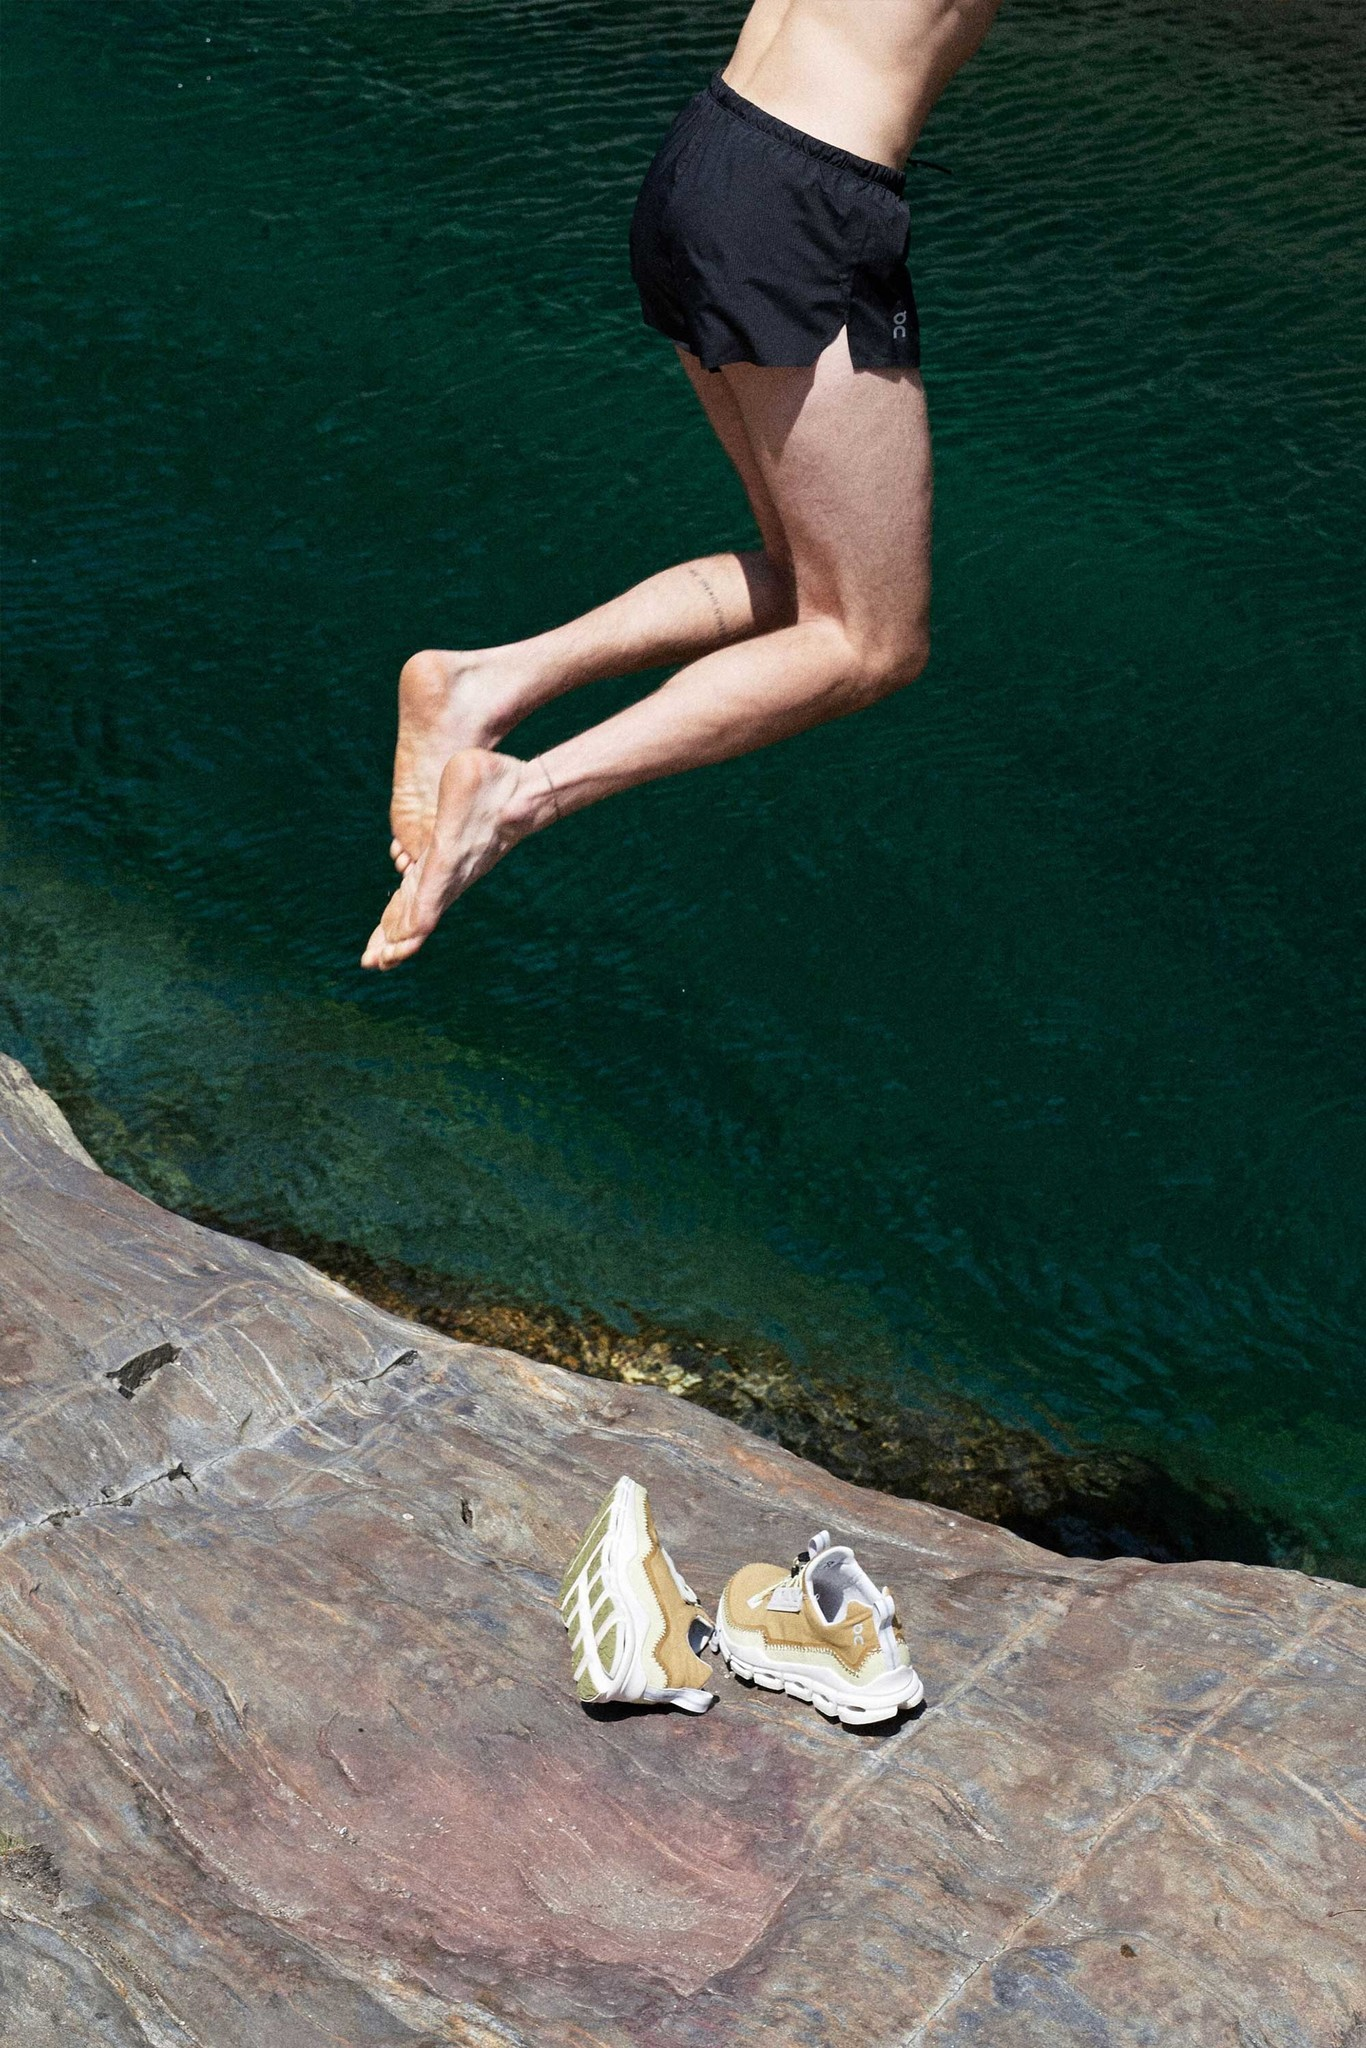 Model jumps off a cliff next to a pair of running shoes